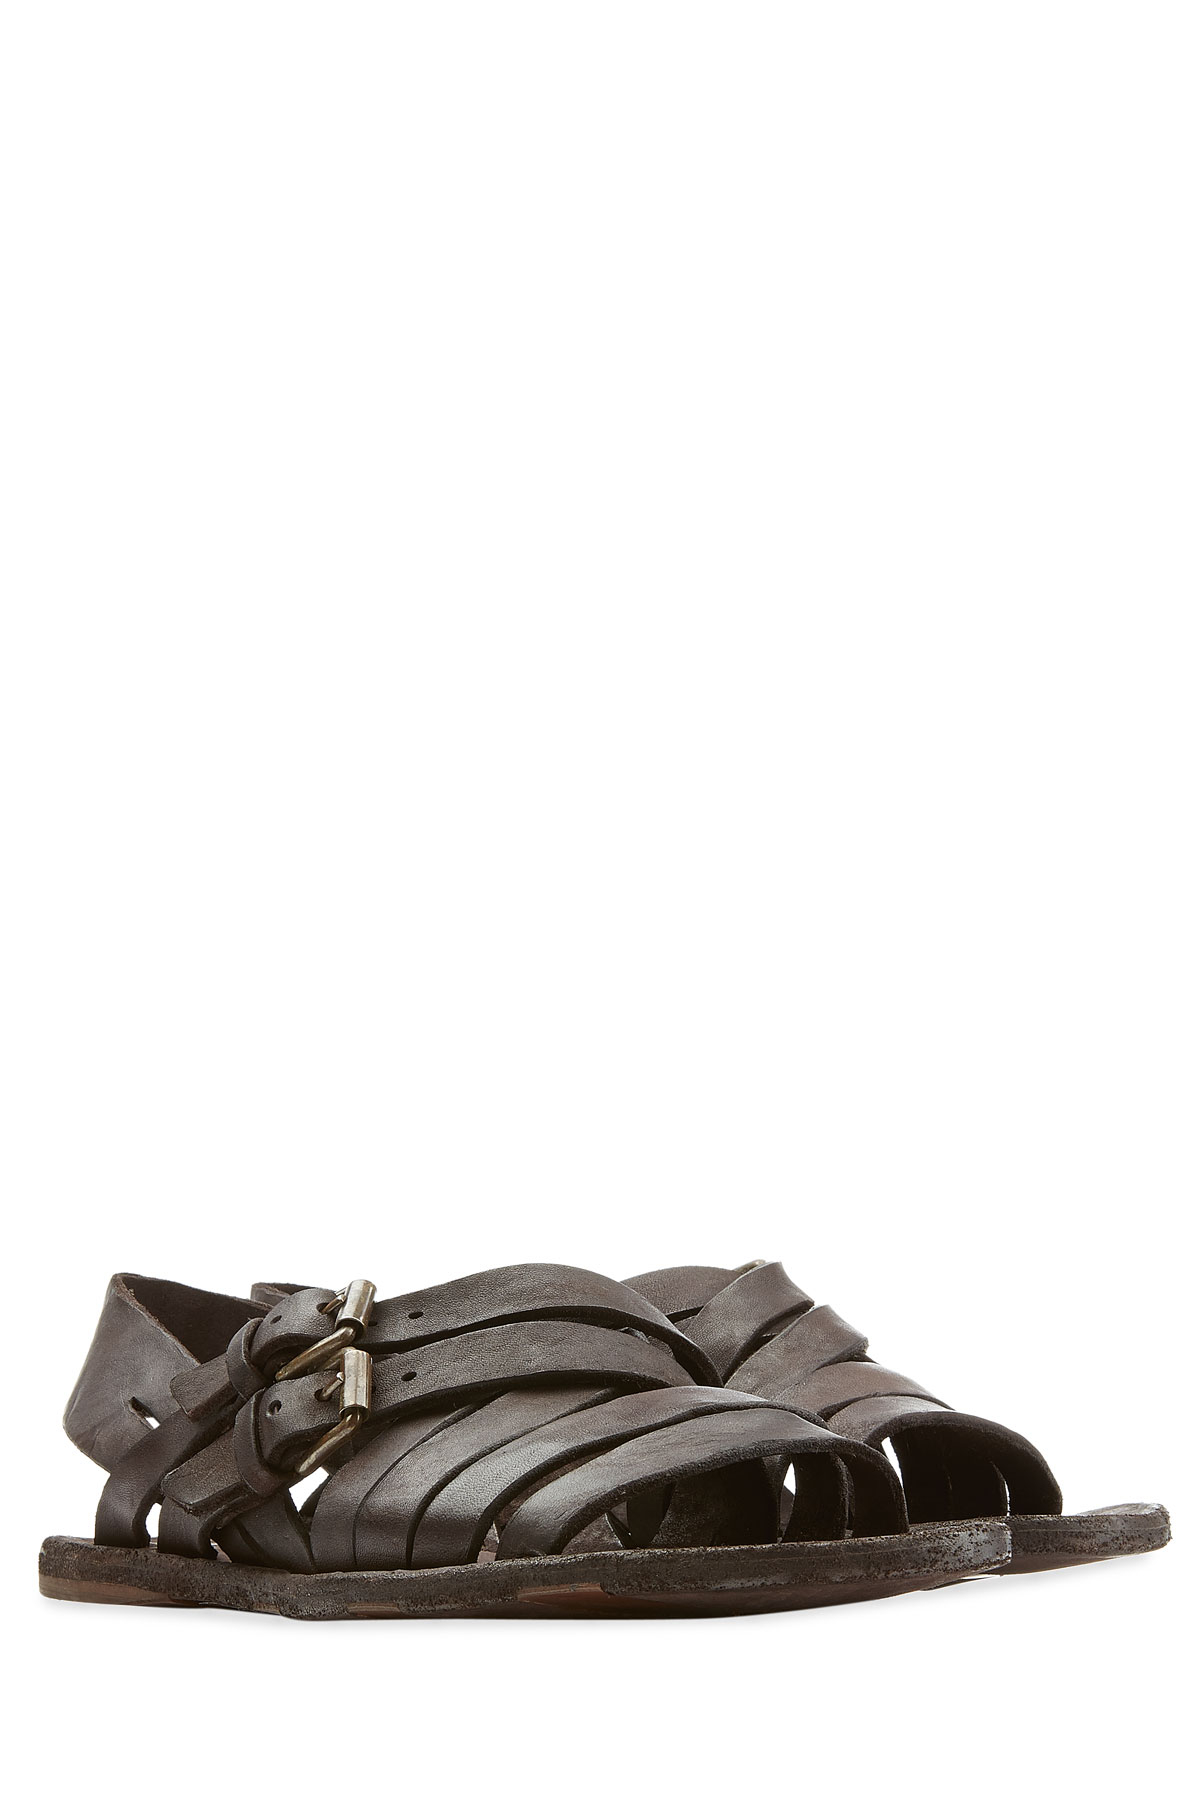 62e468d01ff Lyst - Officine Creative Artisan Leather Sandals in Brown for Men